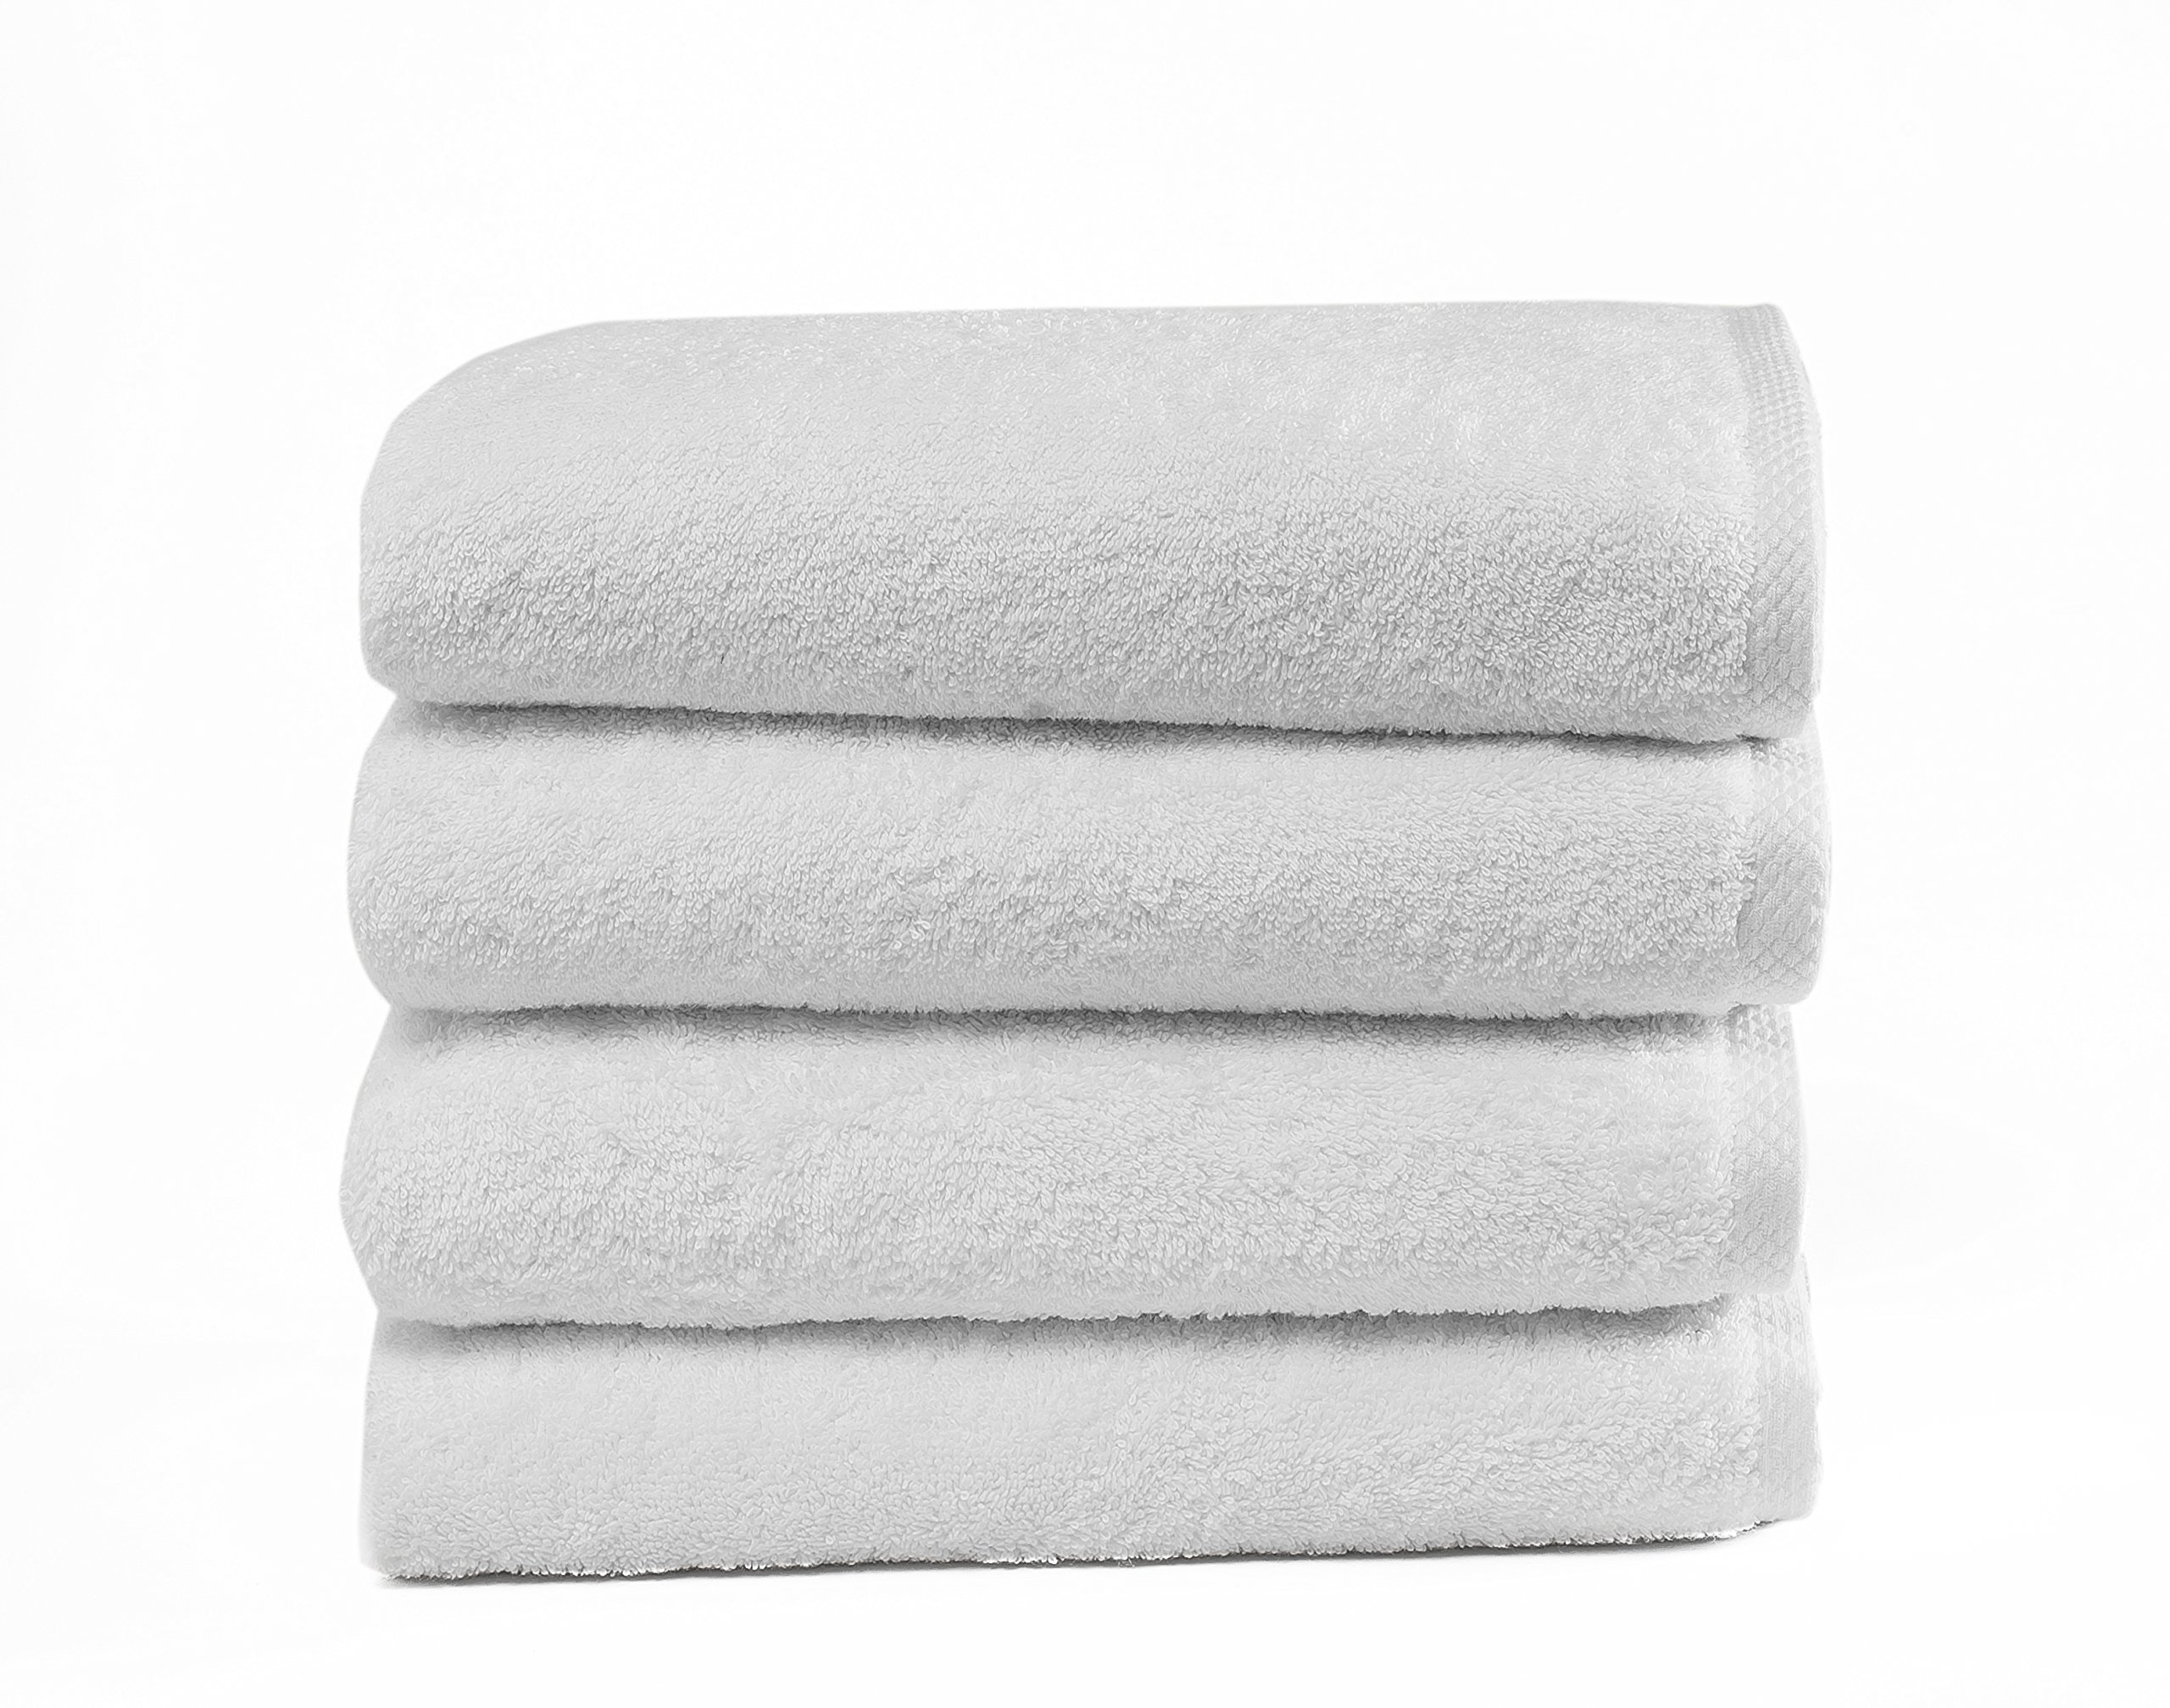 Salbakos Classic Turkish Cotton 4 Piece White Bath Towel Set - Thick and Soft Terry Cloth Hotel and Spa Quality Bath Towels Made with 100% Turkish Cotton 24 x 48 Inch